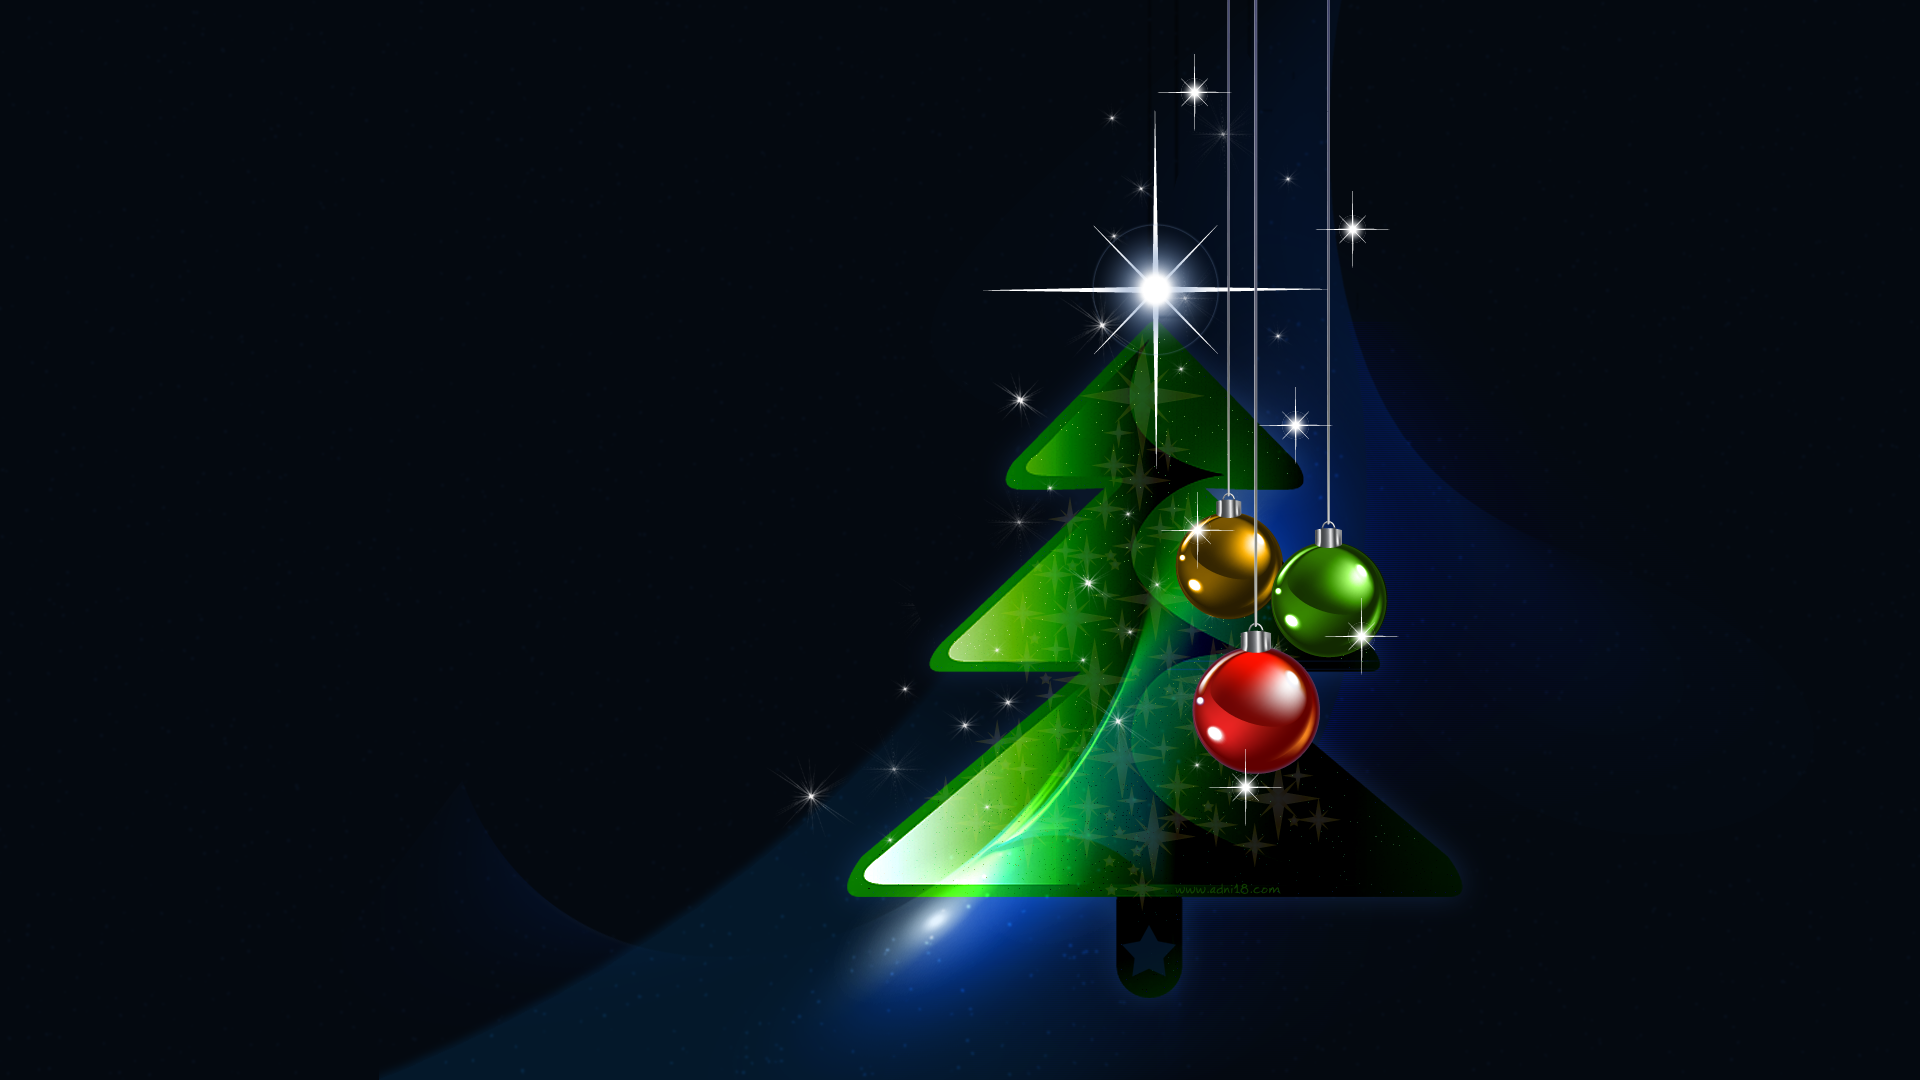 Happy New Year And Merry Christmas Desktop Wallpapers FREE 1920x1080